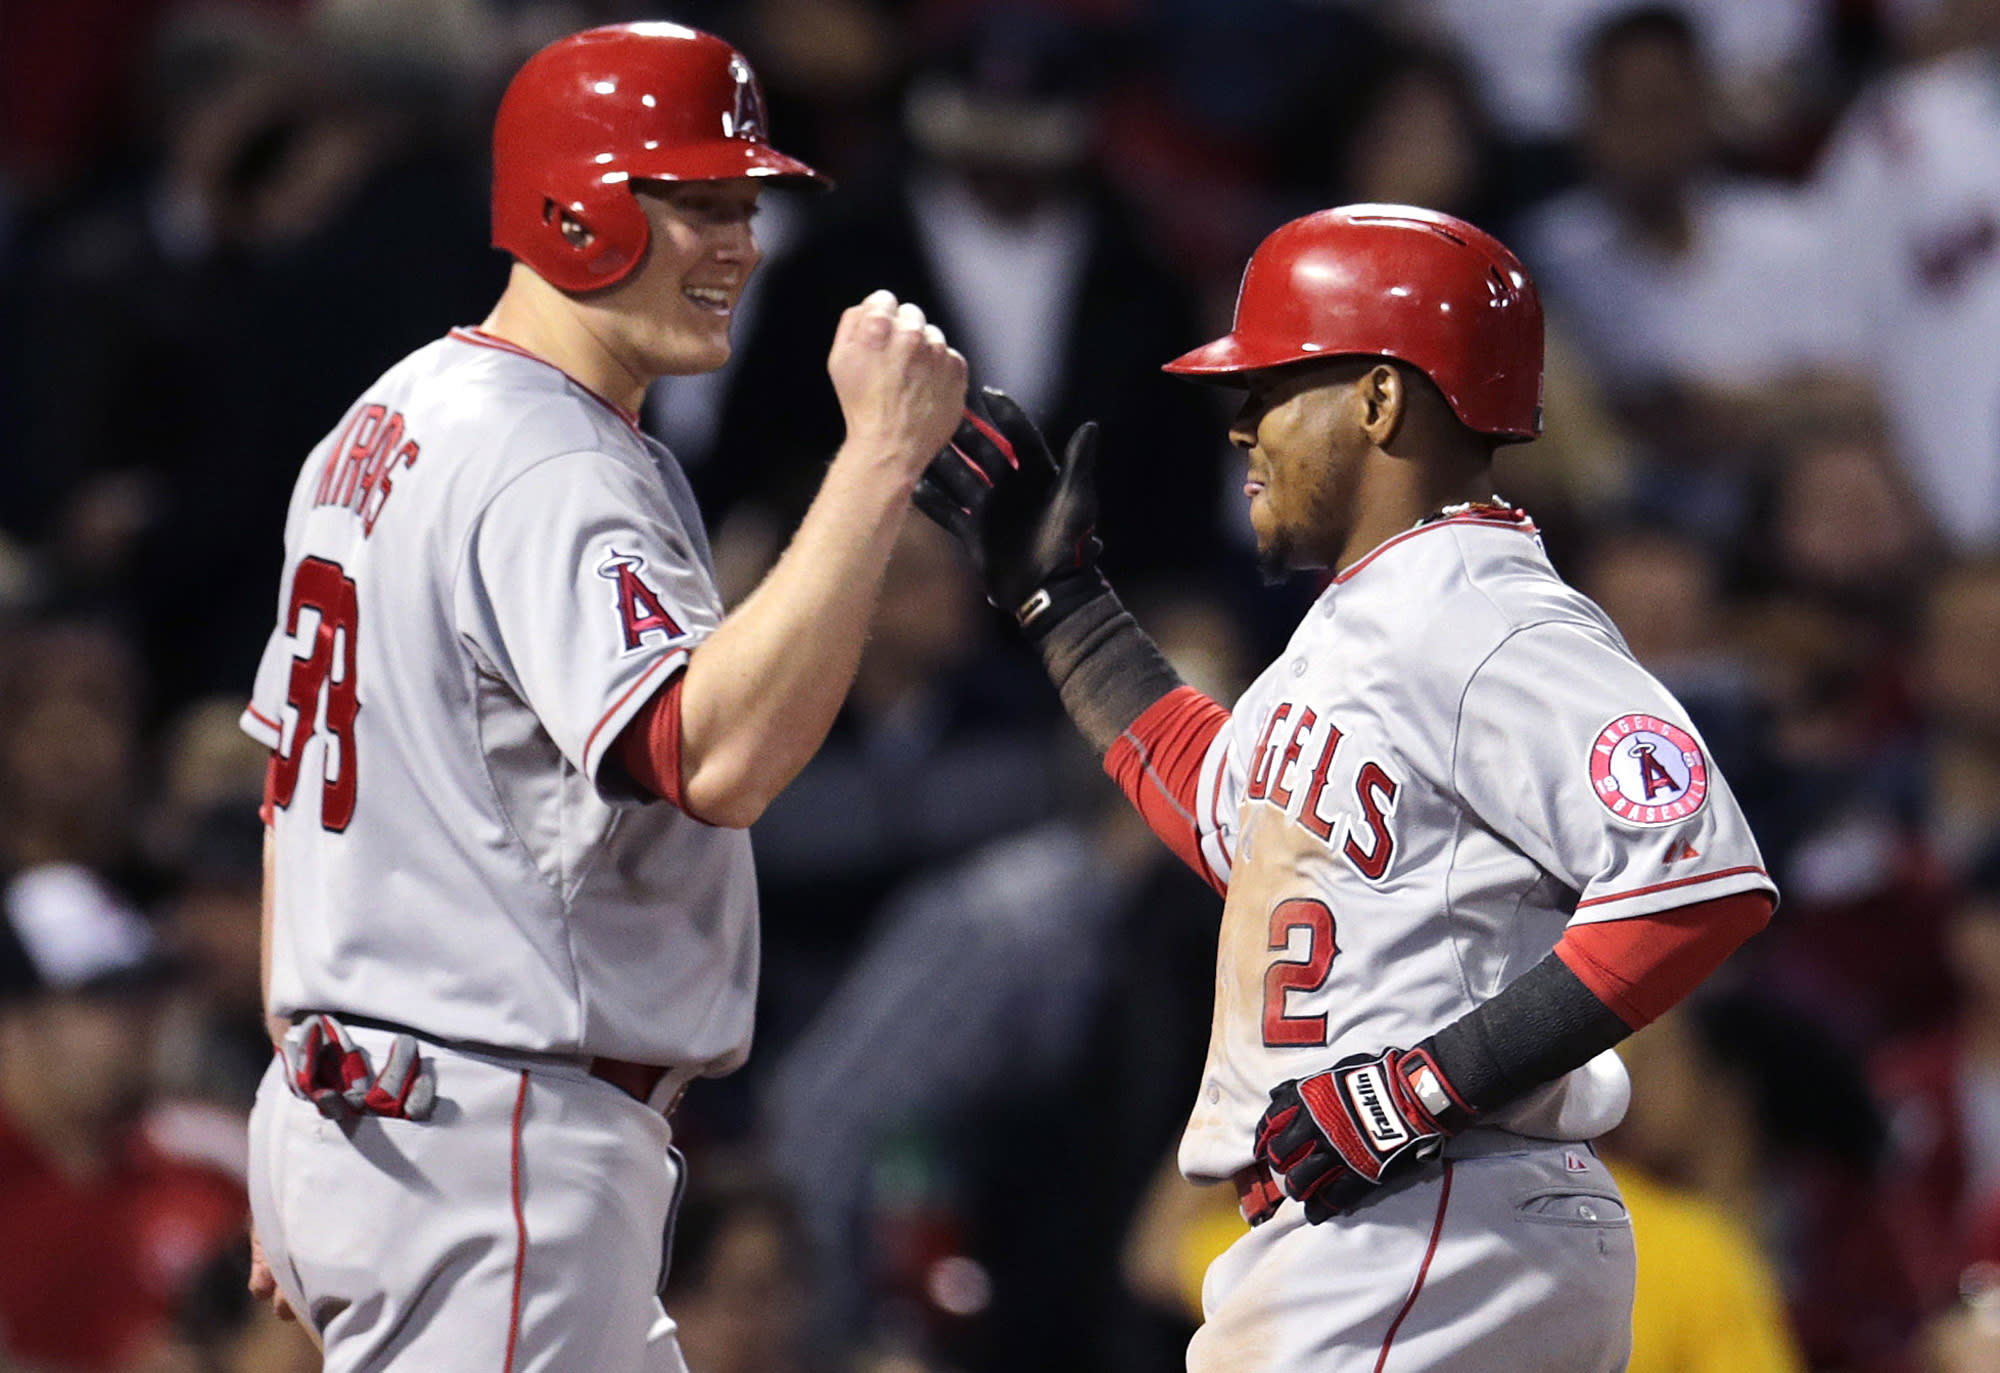 Angels pound Red Sox 12-5